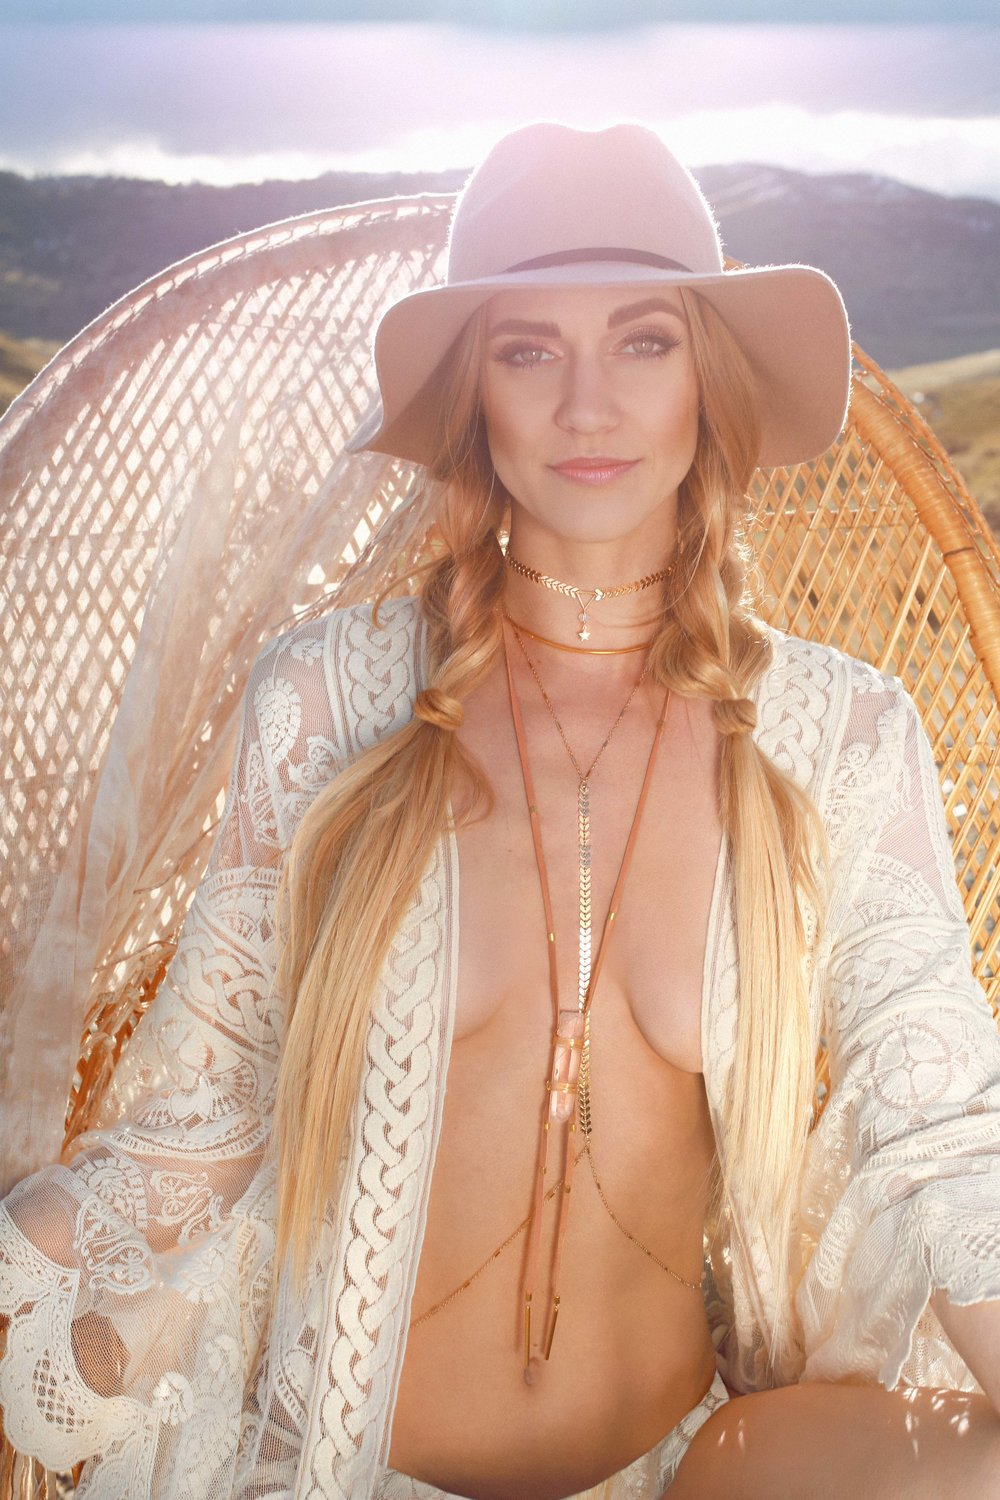 COLORADO GYPSY DREAMIN' - Photo Shoot Story shot by Alyssa Risley - IG @alyssarisley #GLOW